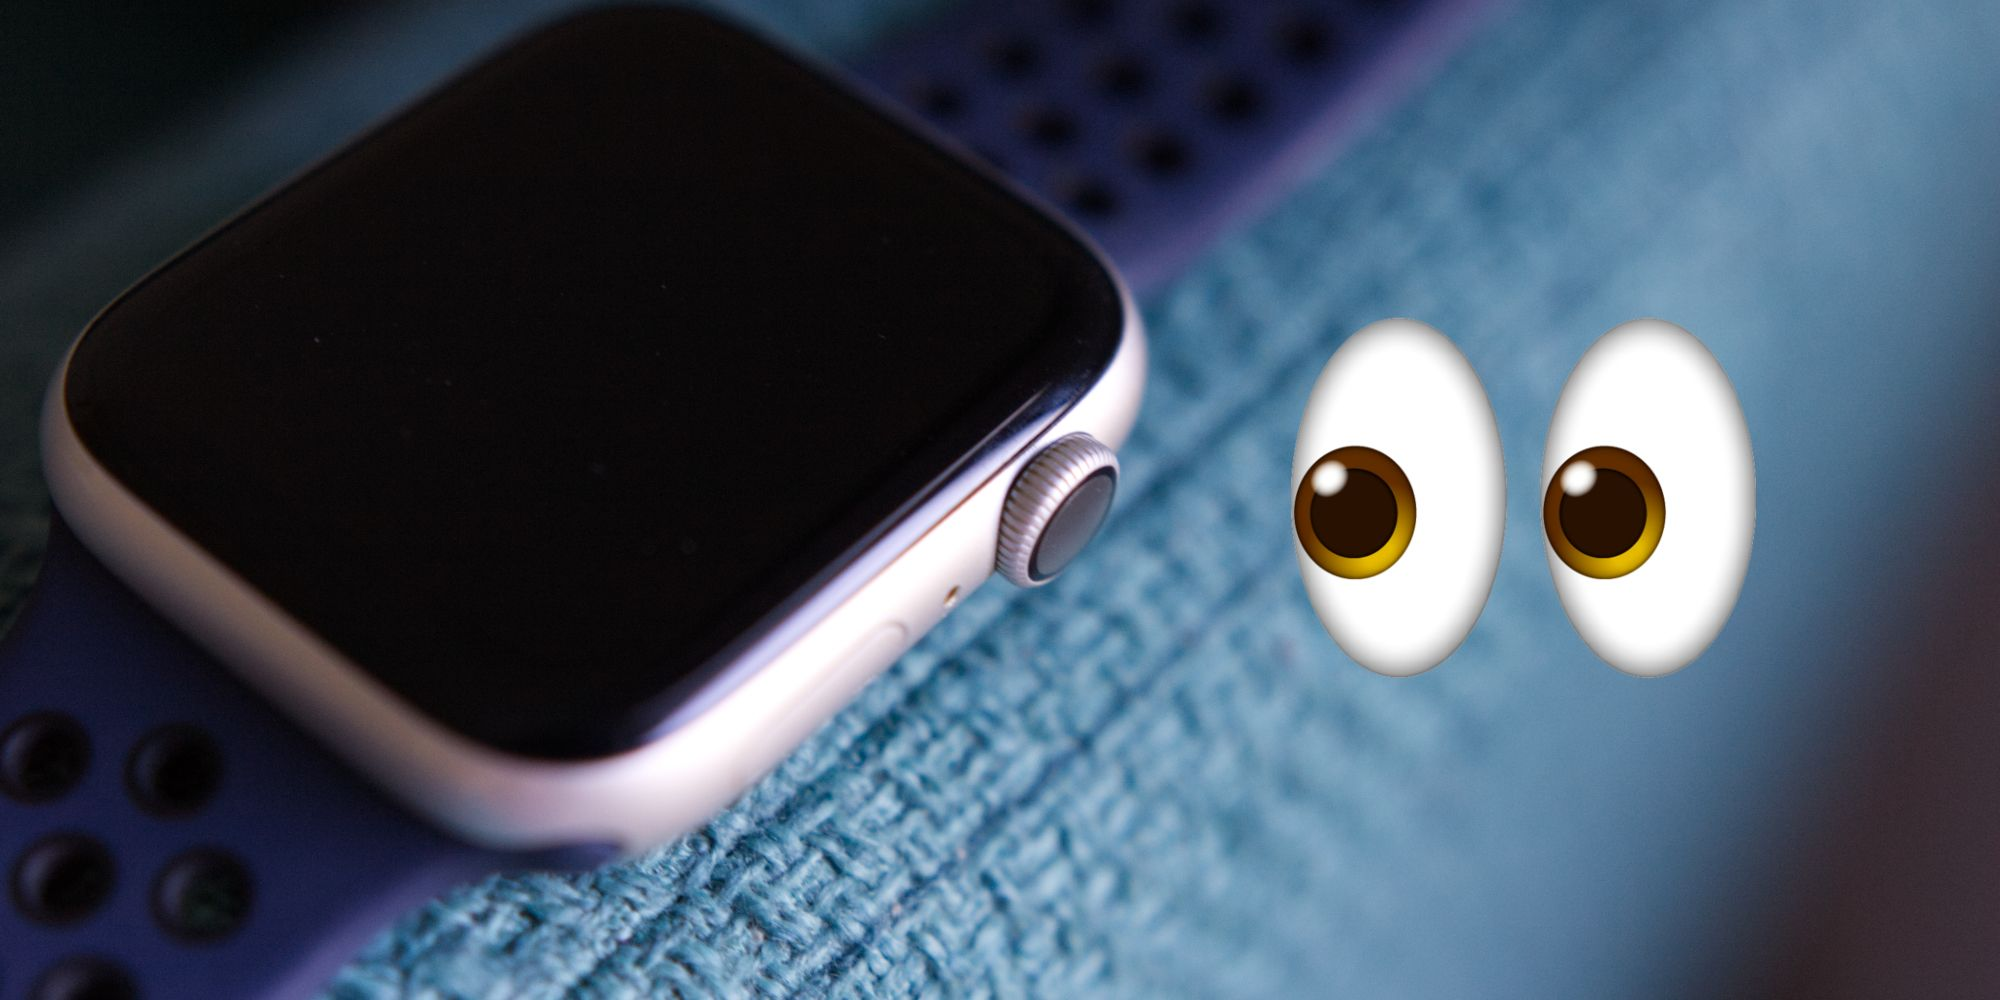 What Is The Digital Crown On An Apple Watch & What Does It Do?